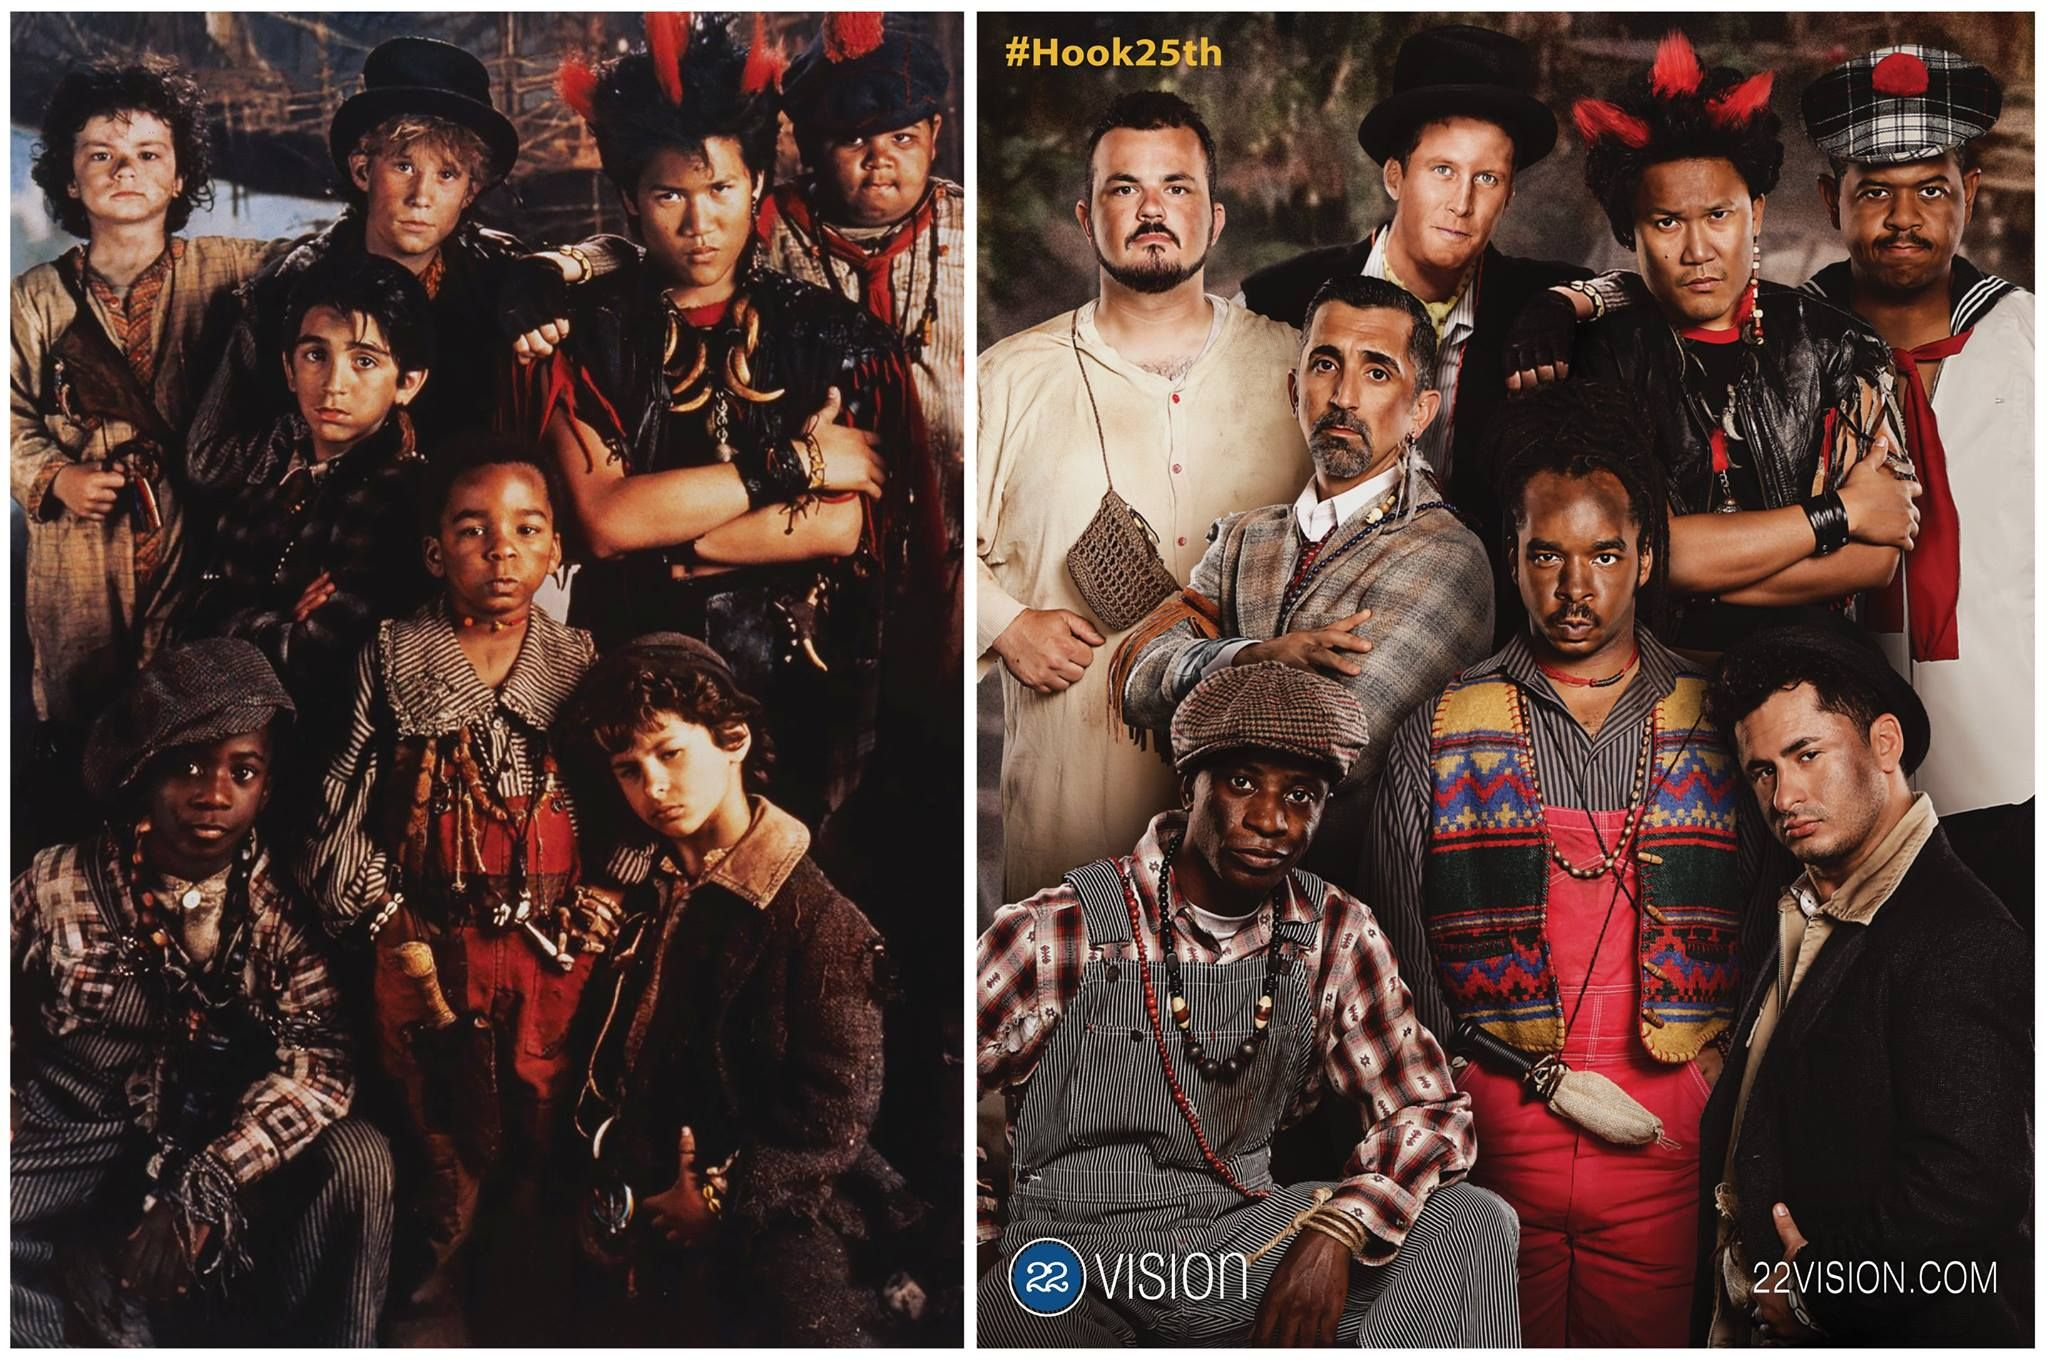 Hook 25th anniversary Lost Boys reunion photos are bangerang